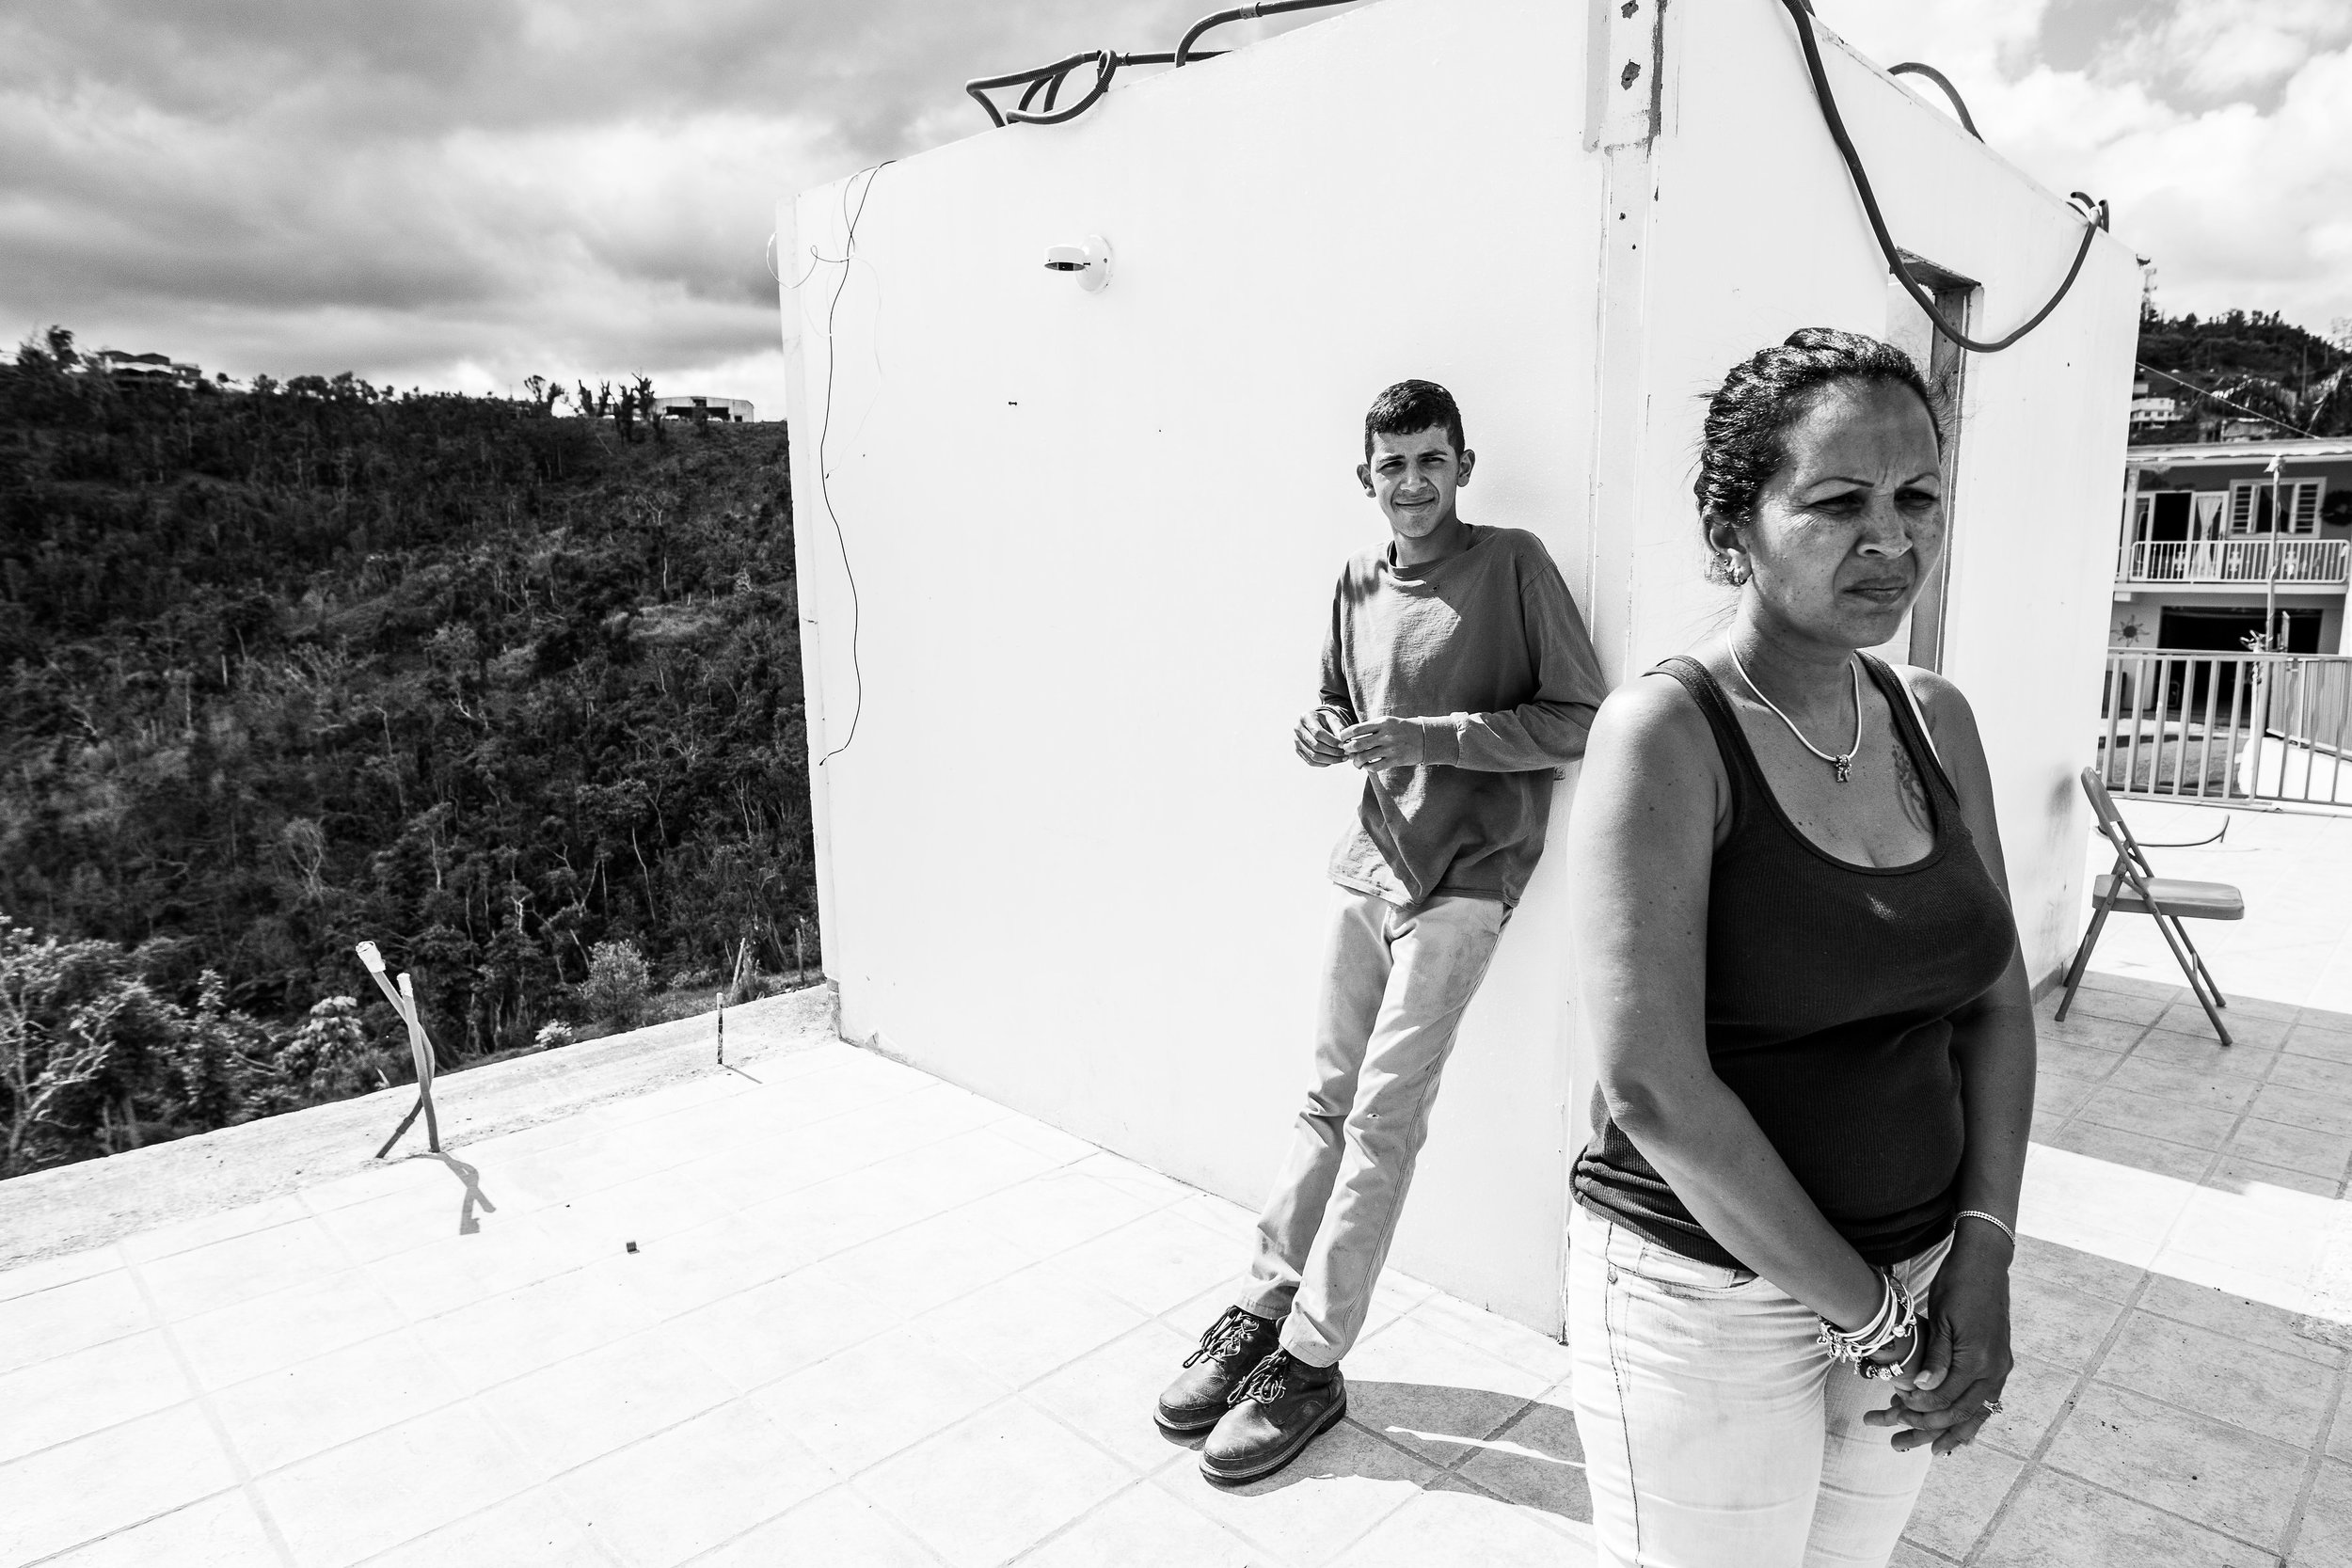 Denisse Hernández stands on the tile floor of her home, on the four month anniversary of Hurricane Maria. Her 15 year old son Javi rests against the only remaining walls of the house - the cinderblock walls enclosing the bathroom. Behind them, a breathtaking valley outside Orocovis. As her family weathered Hurricane Maria in the nearby home of her in-laws, Denisse's children watched their house lift off its foundation and plunge into the valley. Denisse ran a business from her house, so the equipment and supplies for her livelihood were lost with the house. The family is somewhat fortunate in that FEMA aid totals about $10,000. But, the estimate costs of rebuilding the home to be around $35,000. More troubling for the moment, though, is the fact that they ordered cinderblocks to begin rebuilding, and paid, in mid-November. When we visit them, the cinderblocks have yet to arrive, and they don't know when they will. It is Denise's understanding that FEMA has legal right to take any supplies that arrive in port, and she thinks maybe FEMA used their cinderblocks for something else. Meanwhile, the price of basic building supplies has more than doubled on the island. She thinks maybe US suppliers (thanks to the Jones Act, all shipments of anything to Puerto Rico have to come from US suppliers in US ships) are hiking up prices of supplies to Puerto Rico.  In mid-February, 2018, the cinderblocks arrived. They came just a few days after electricity was restored on Denisse's entire street. Photo: Katie Jett Walls